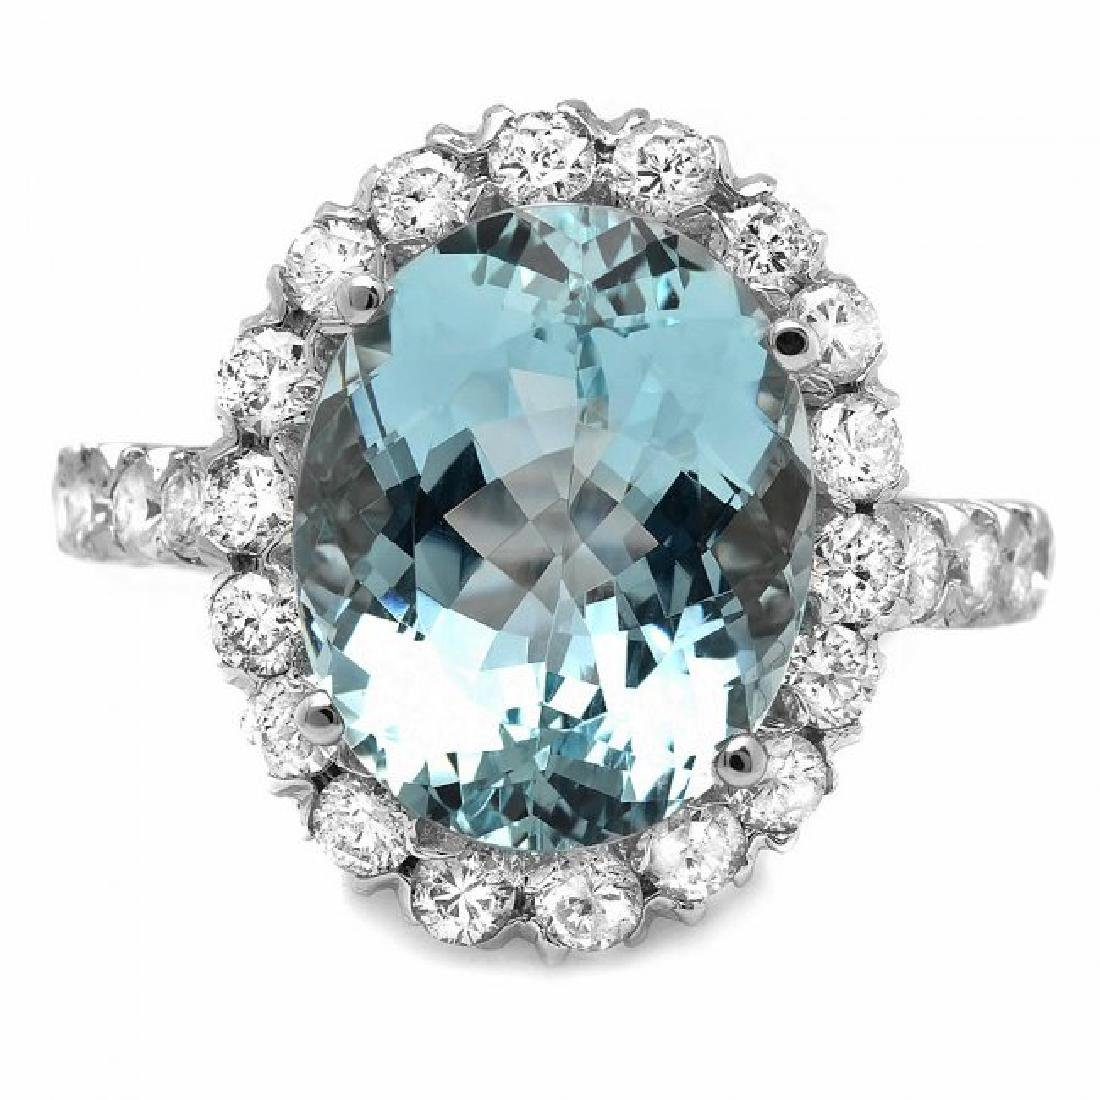 14k Gold 7.50ct Aquamarine 1.55ct Diamond Ring - 2